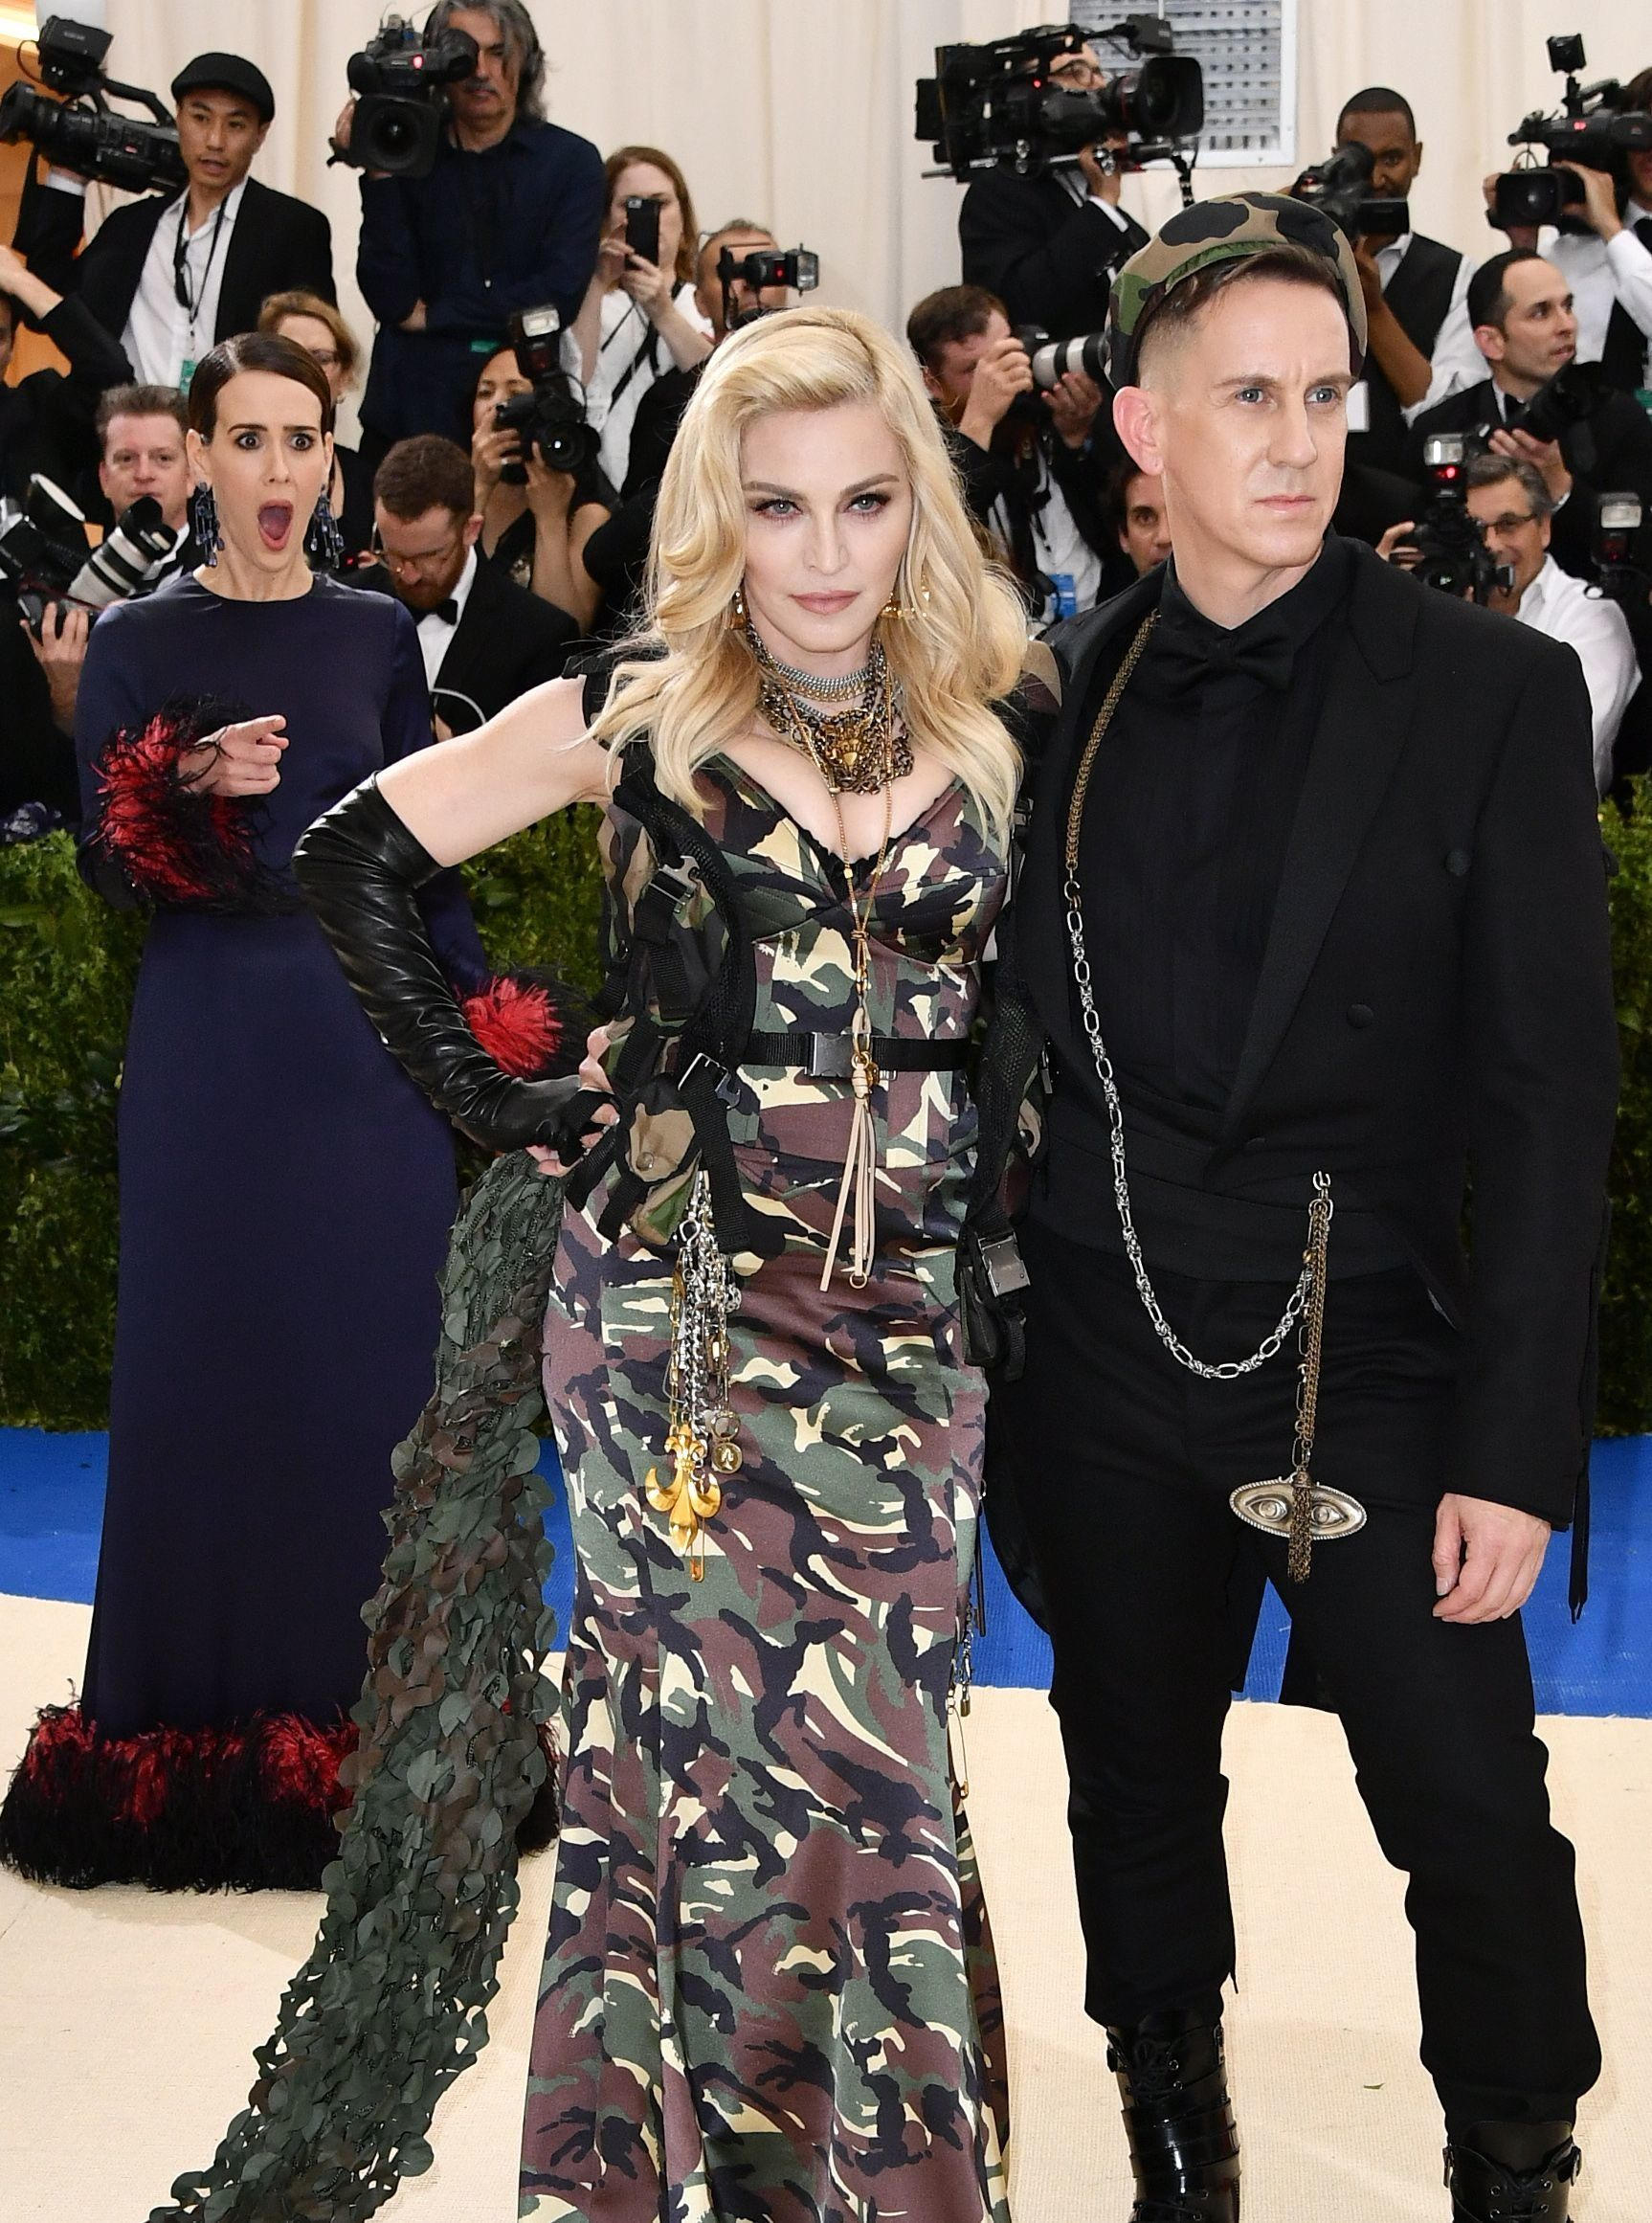 Sarah Paulson's Reaction To Seeing Madonna At The Met Gala Was